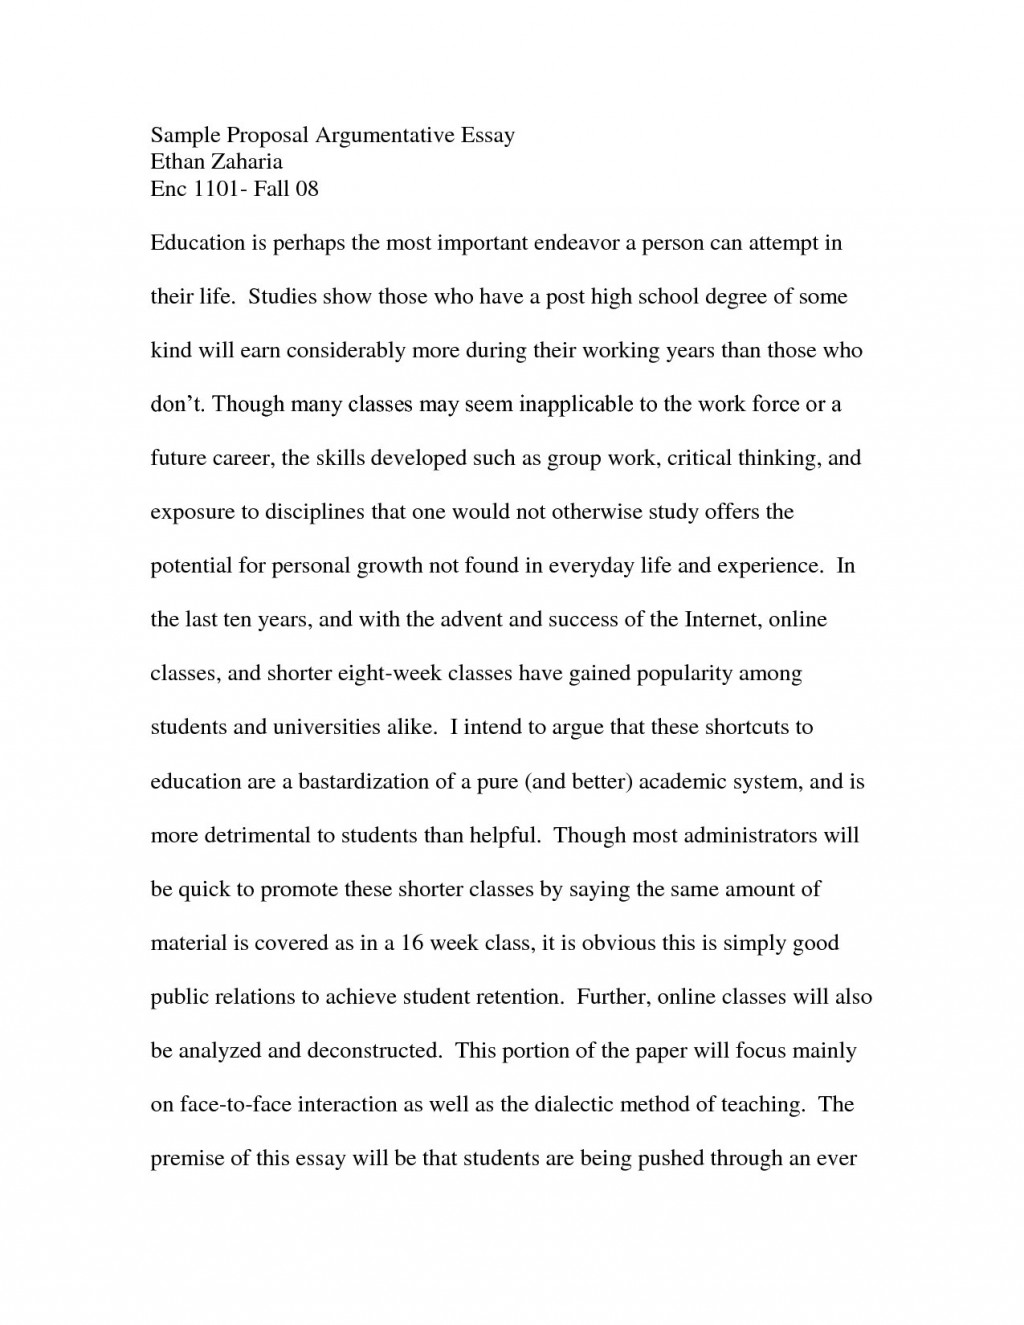 008 Solar System Homework Lampa How To Write Good Persuasive Essay For College Definition Education Psychology Edu Sample Argumentative High S Successful Conclusion Tips On Staar Introduction Frightening Example School Short Pdf Large